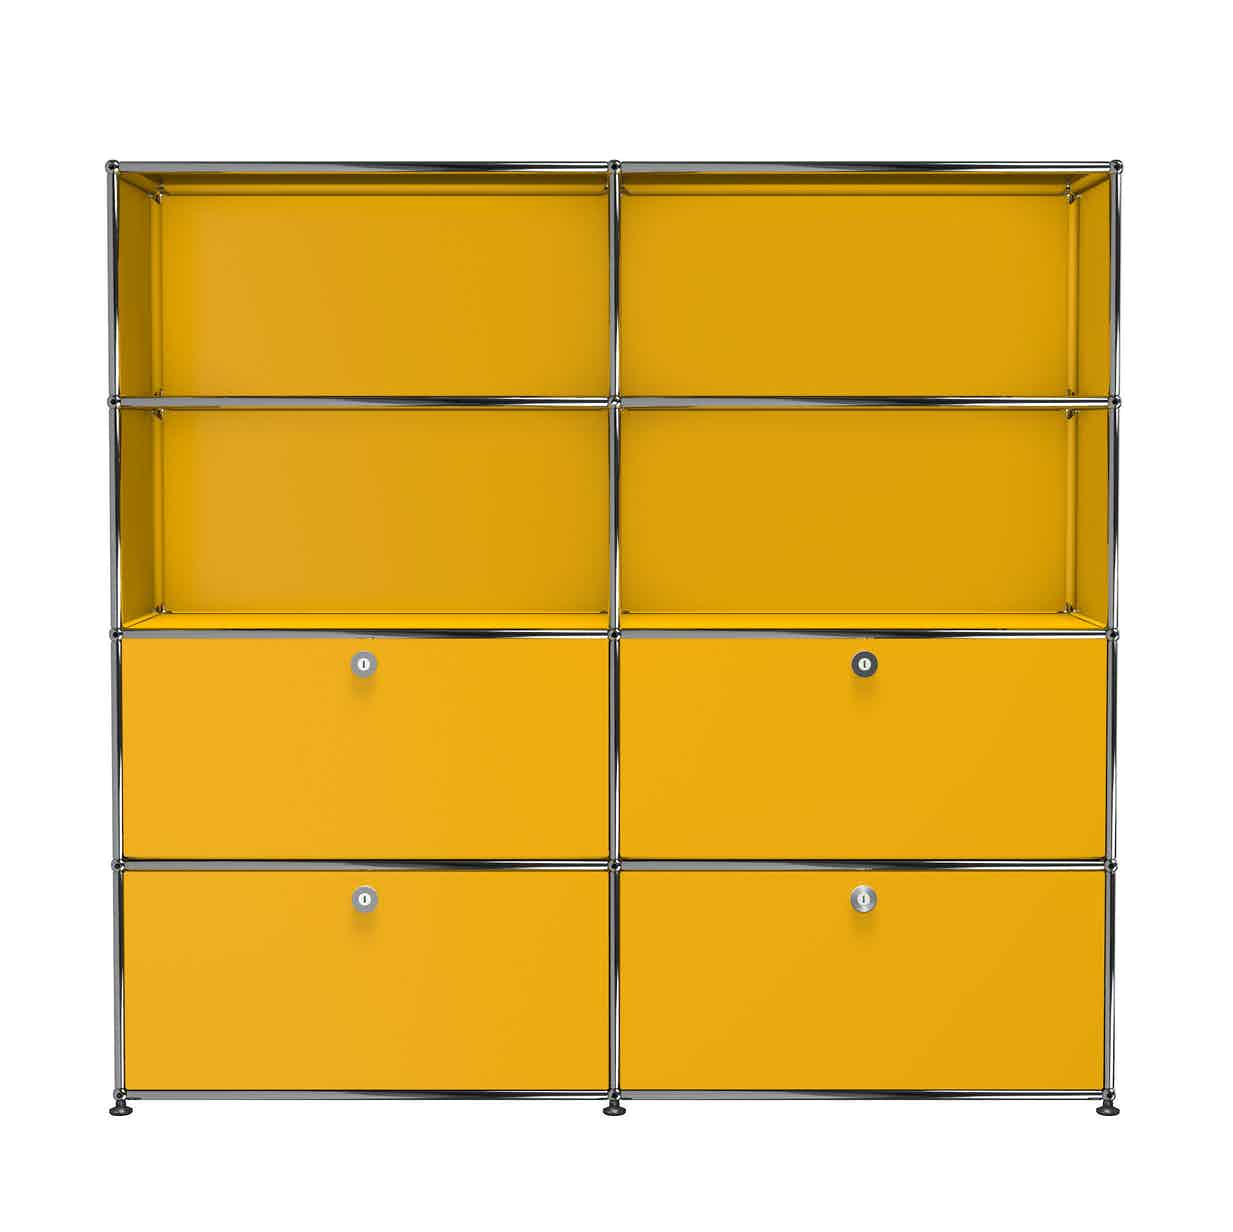 Usm-quick-ship-Haller-Storage-S2-yellow-haute-living